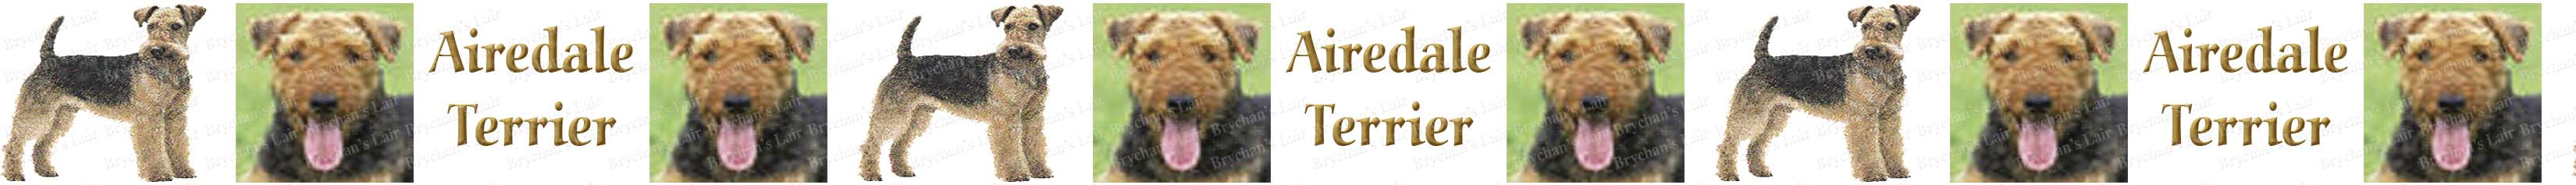 Airedale Terrier Labeled Dog Breed Custom Printed Grosgrain Ribbon